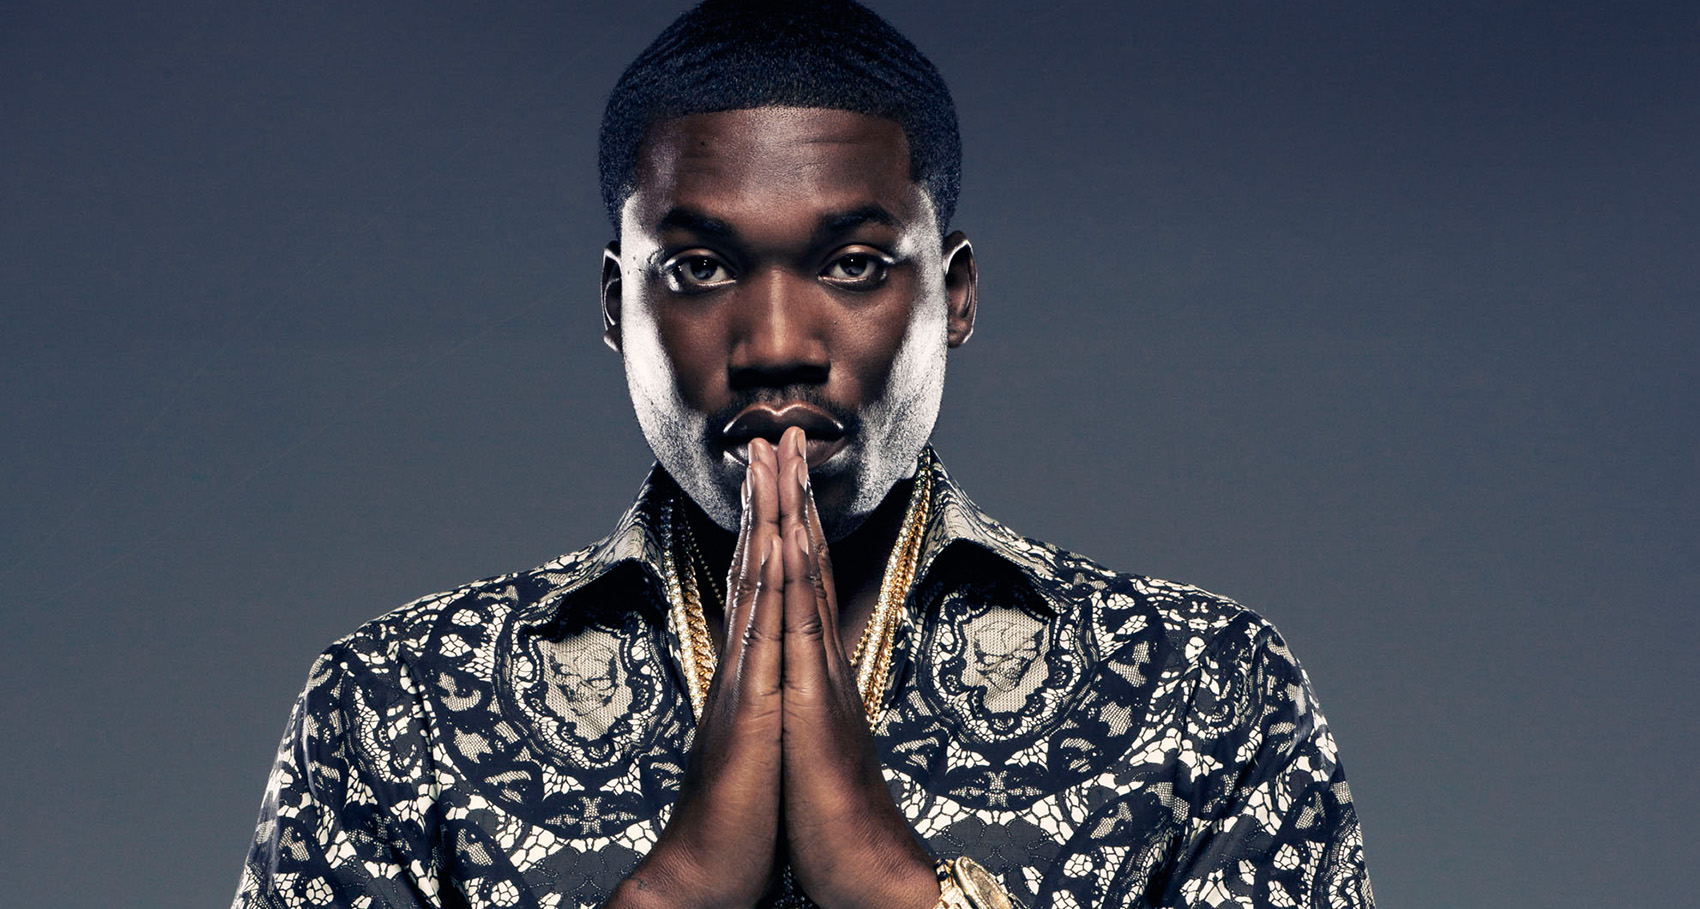 Meek-Mill-Tops-Billboard-200-For-The-First-Time-MusicSnake